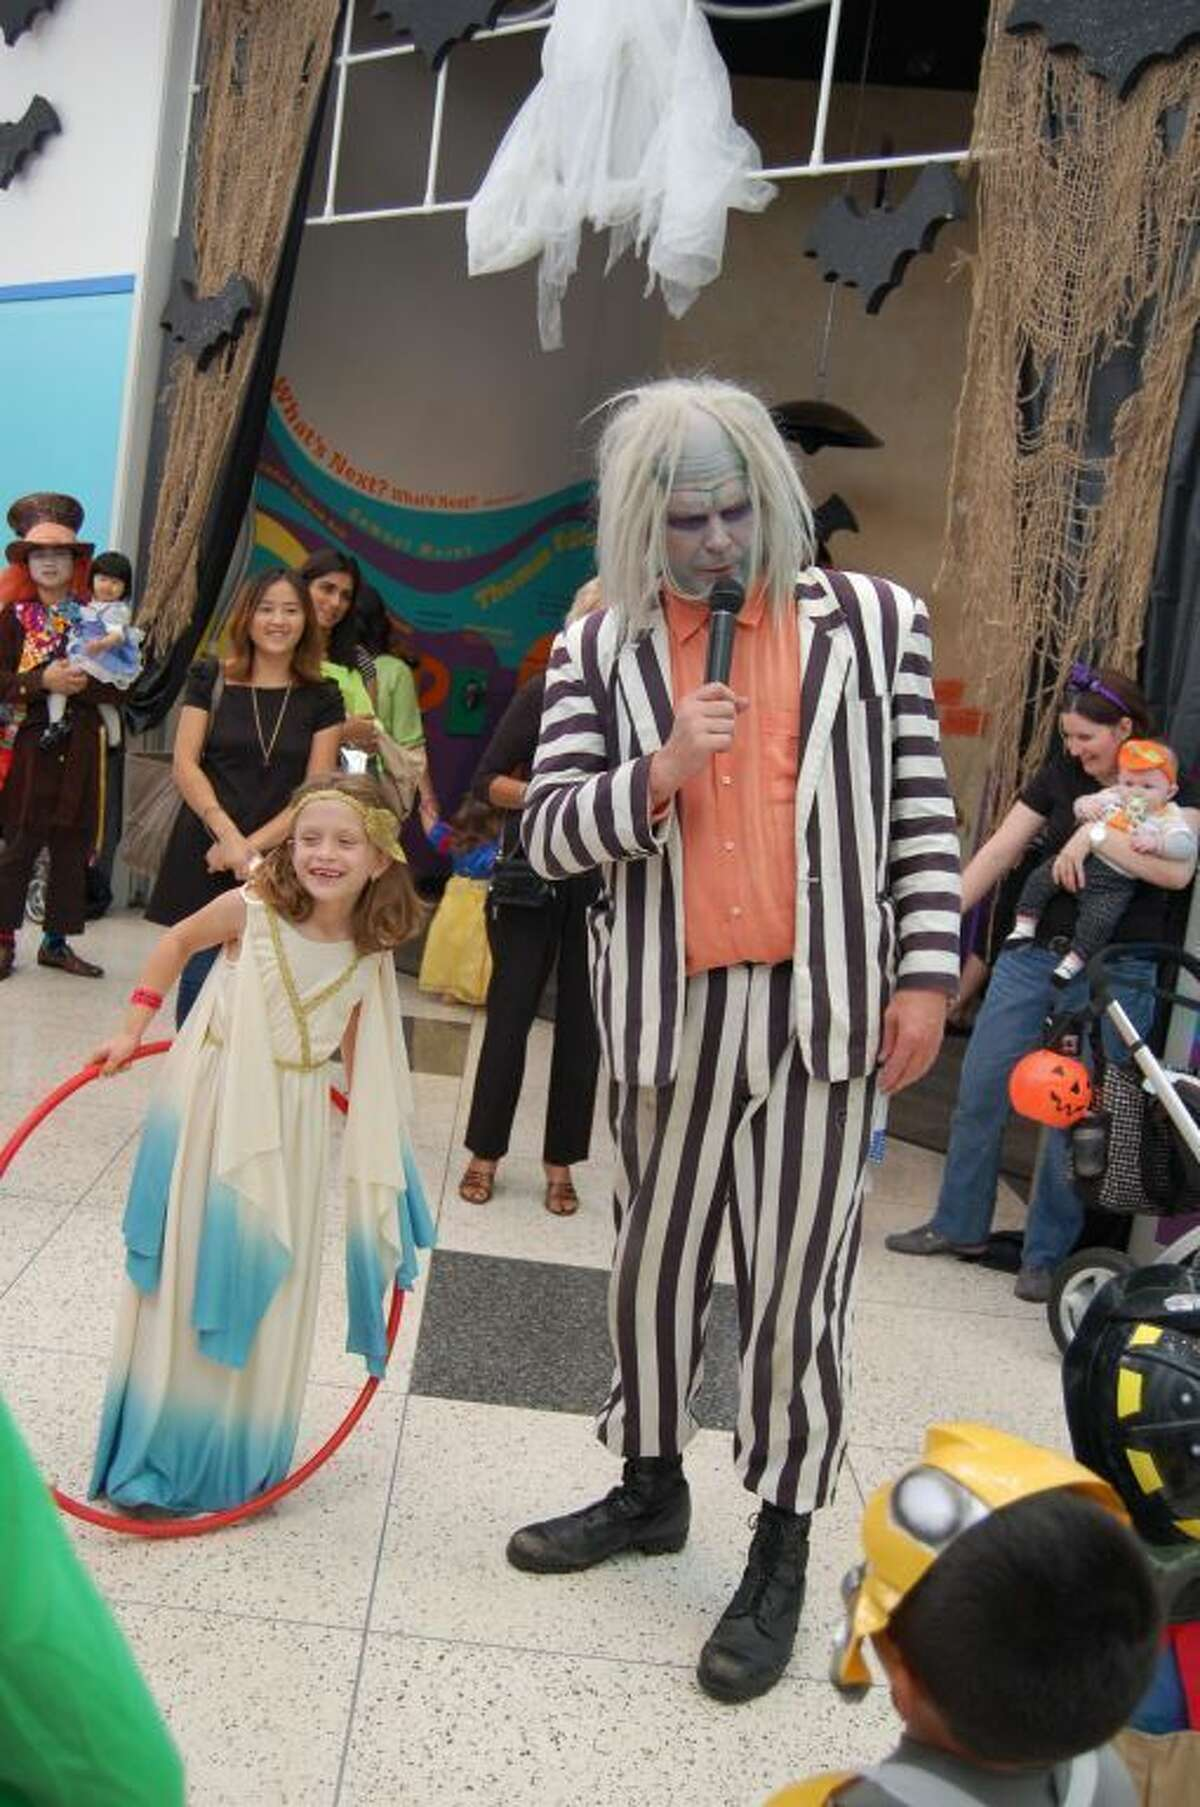 Each October the Children s Museum of Houston morphs into Happy Halloween Mansion. Now through Wednesday, oct31, children can explore the haunted hallways in search of tricks and treats. Activities include a visit with a mad scientist, a Thriller dance party, trick-or-treating and a pumpkin patch. Then on Wednesday, it s the Halloween Spooktacular, a family party (4 p.m.-8 p.m.) that includes an undead DJ, dancing and pumpkin decorating.